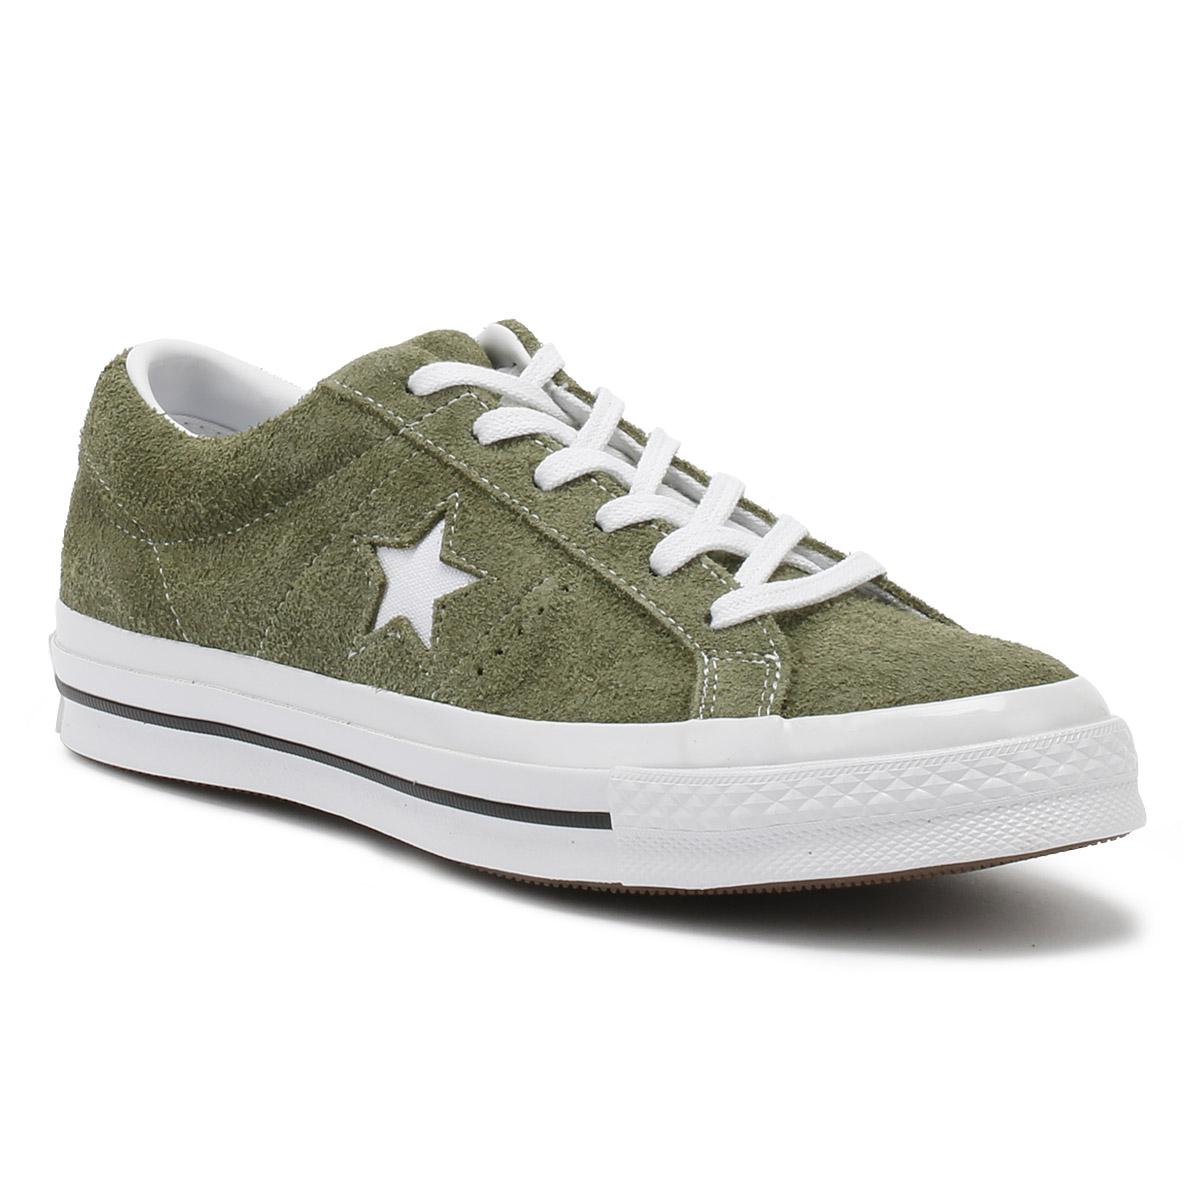 999d6a2396de9e Lyst - Converse One Star Ox Field Surplus White White in Green for Men